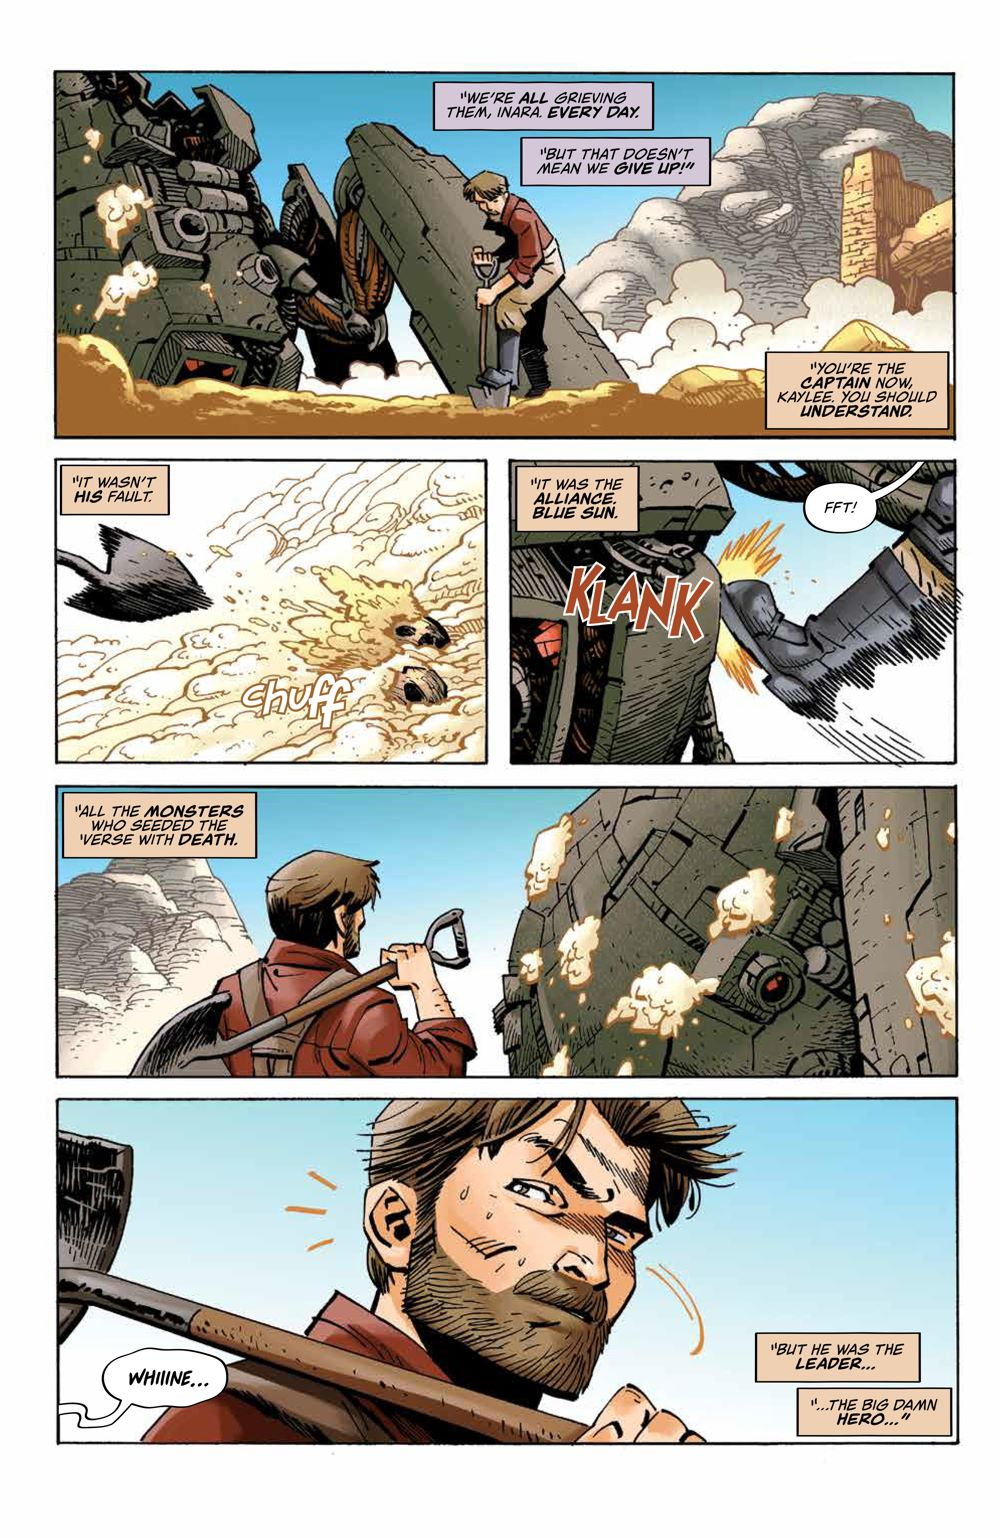 Firefly_027_PRESS_7 ComicList Previews: FIREFLY #27